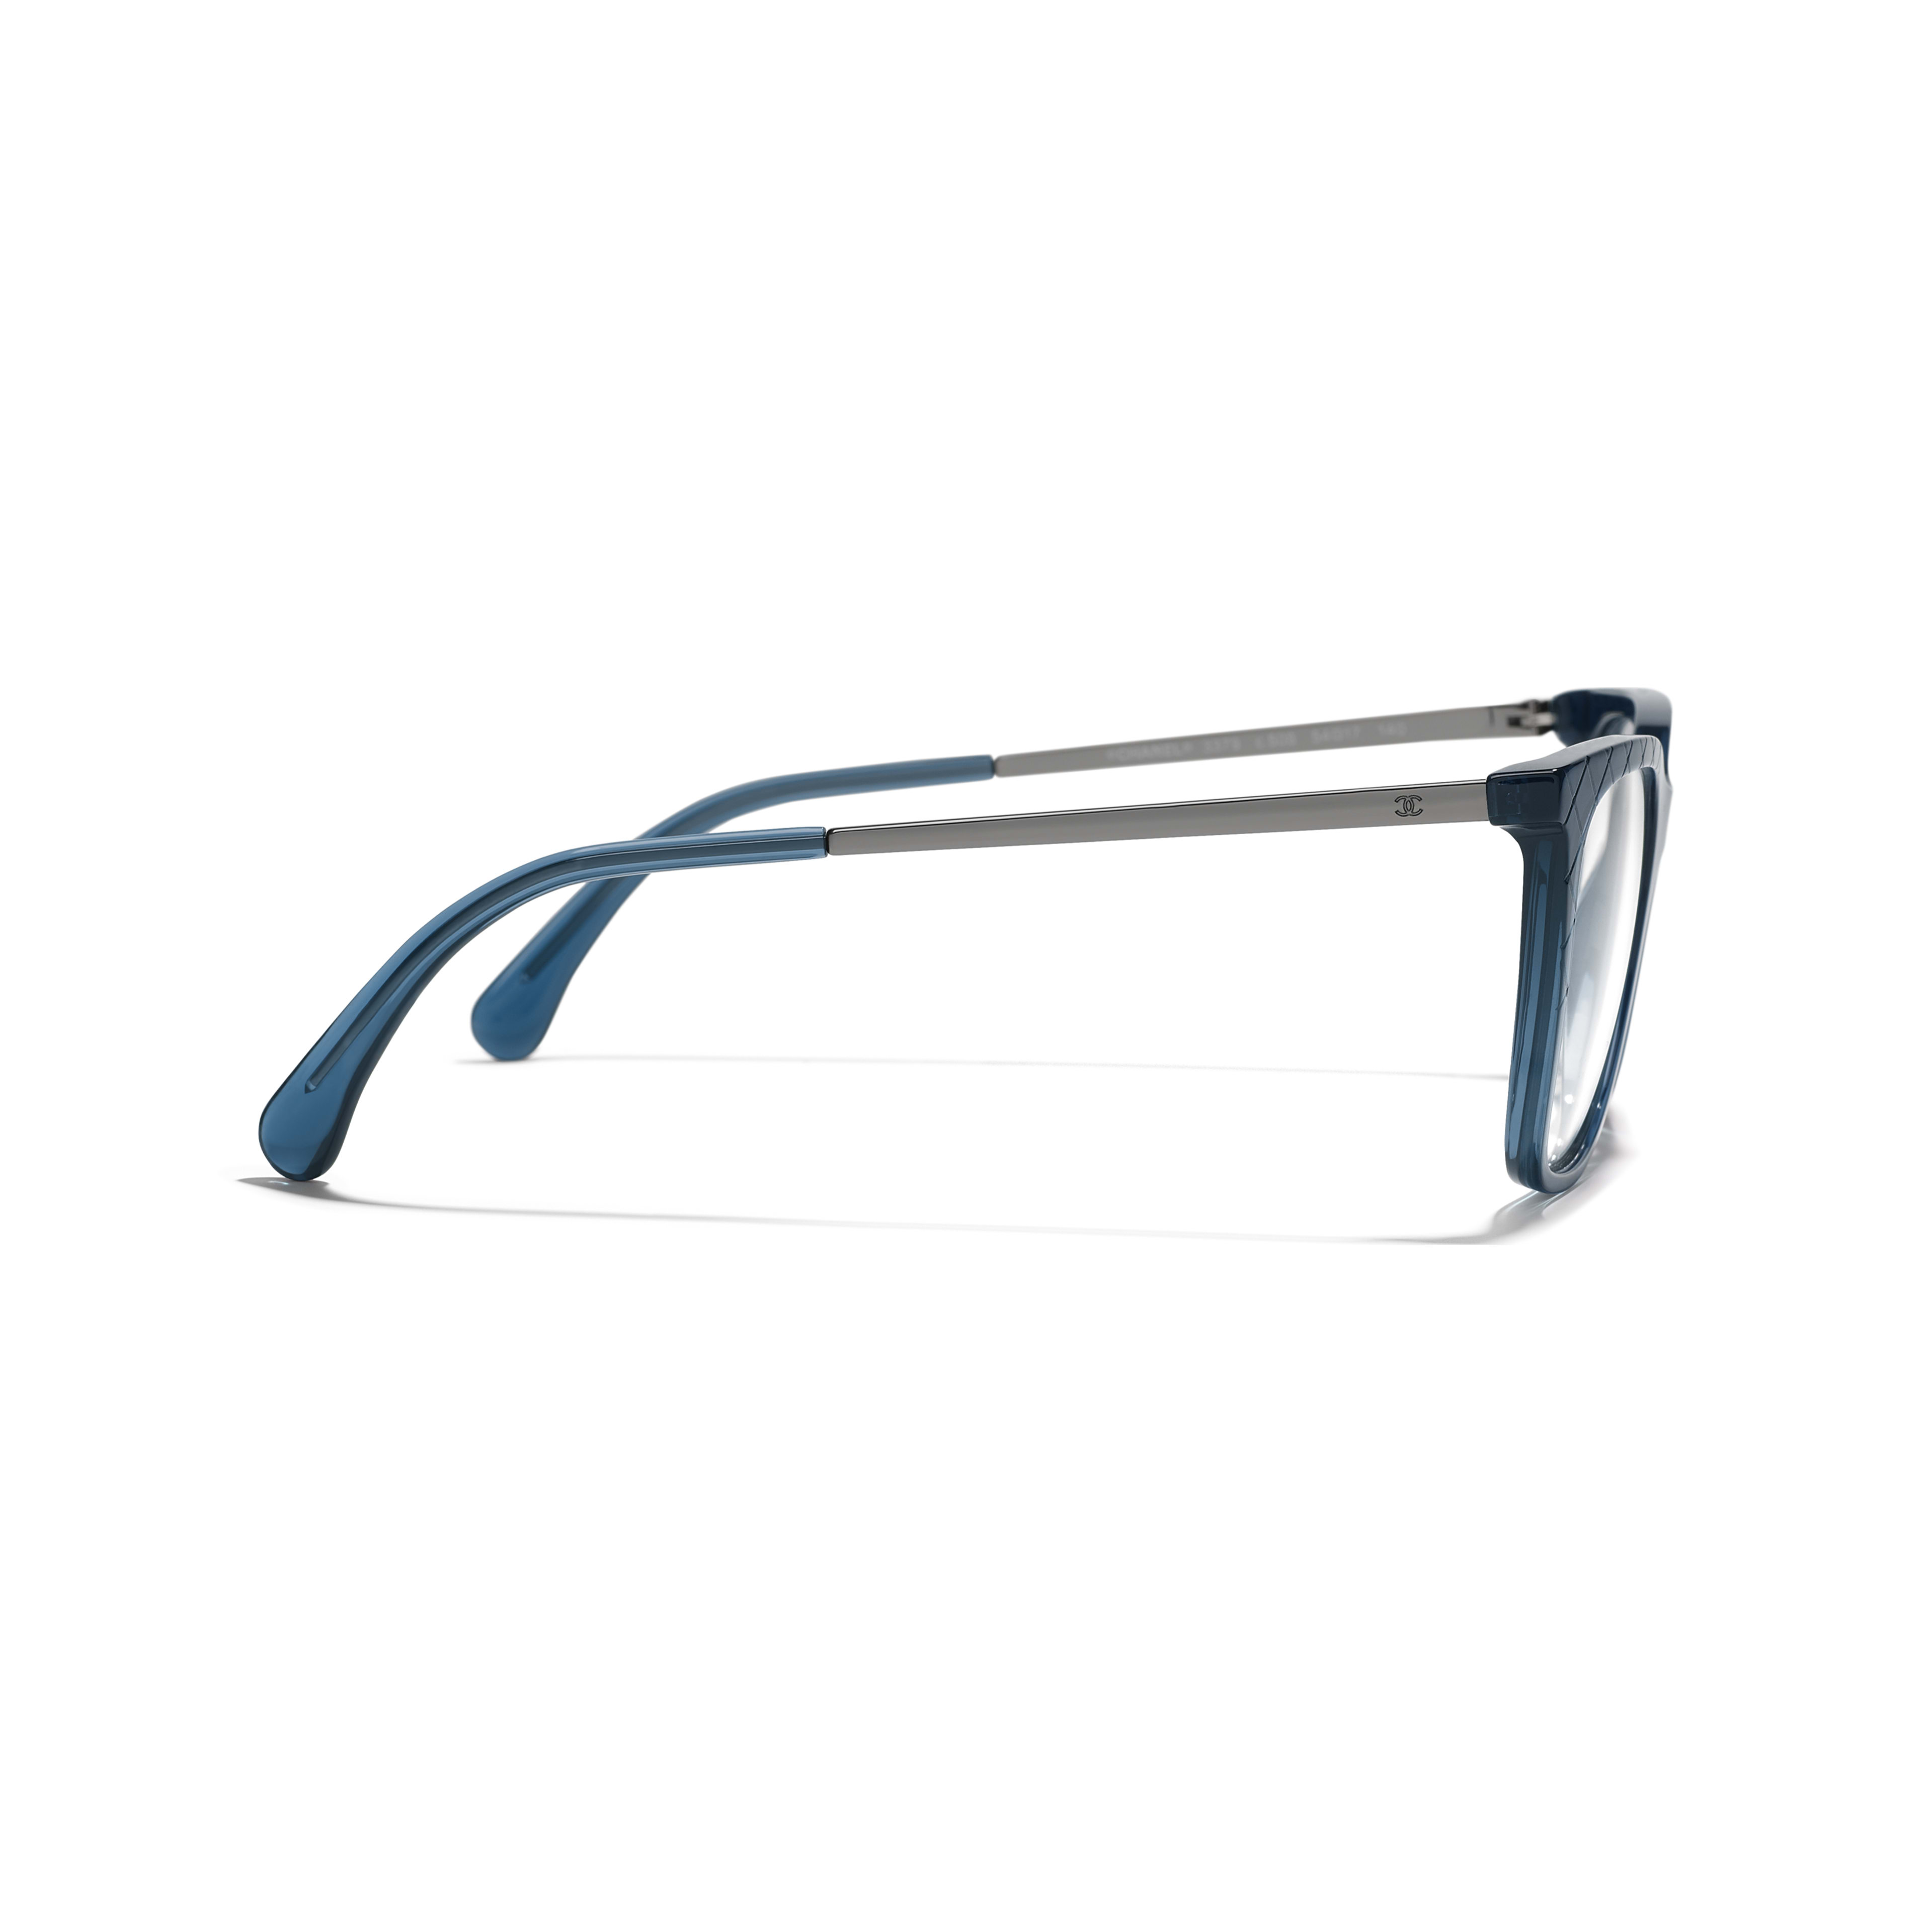 Rectangle Eyeglasses - Blue - Acetate & Metal - Other view - see full sized version